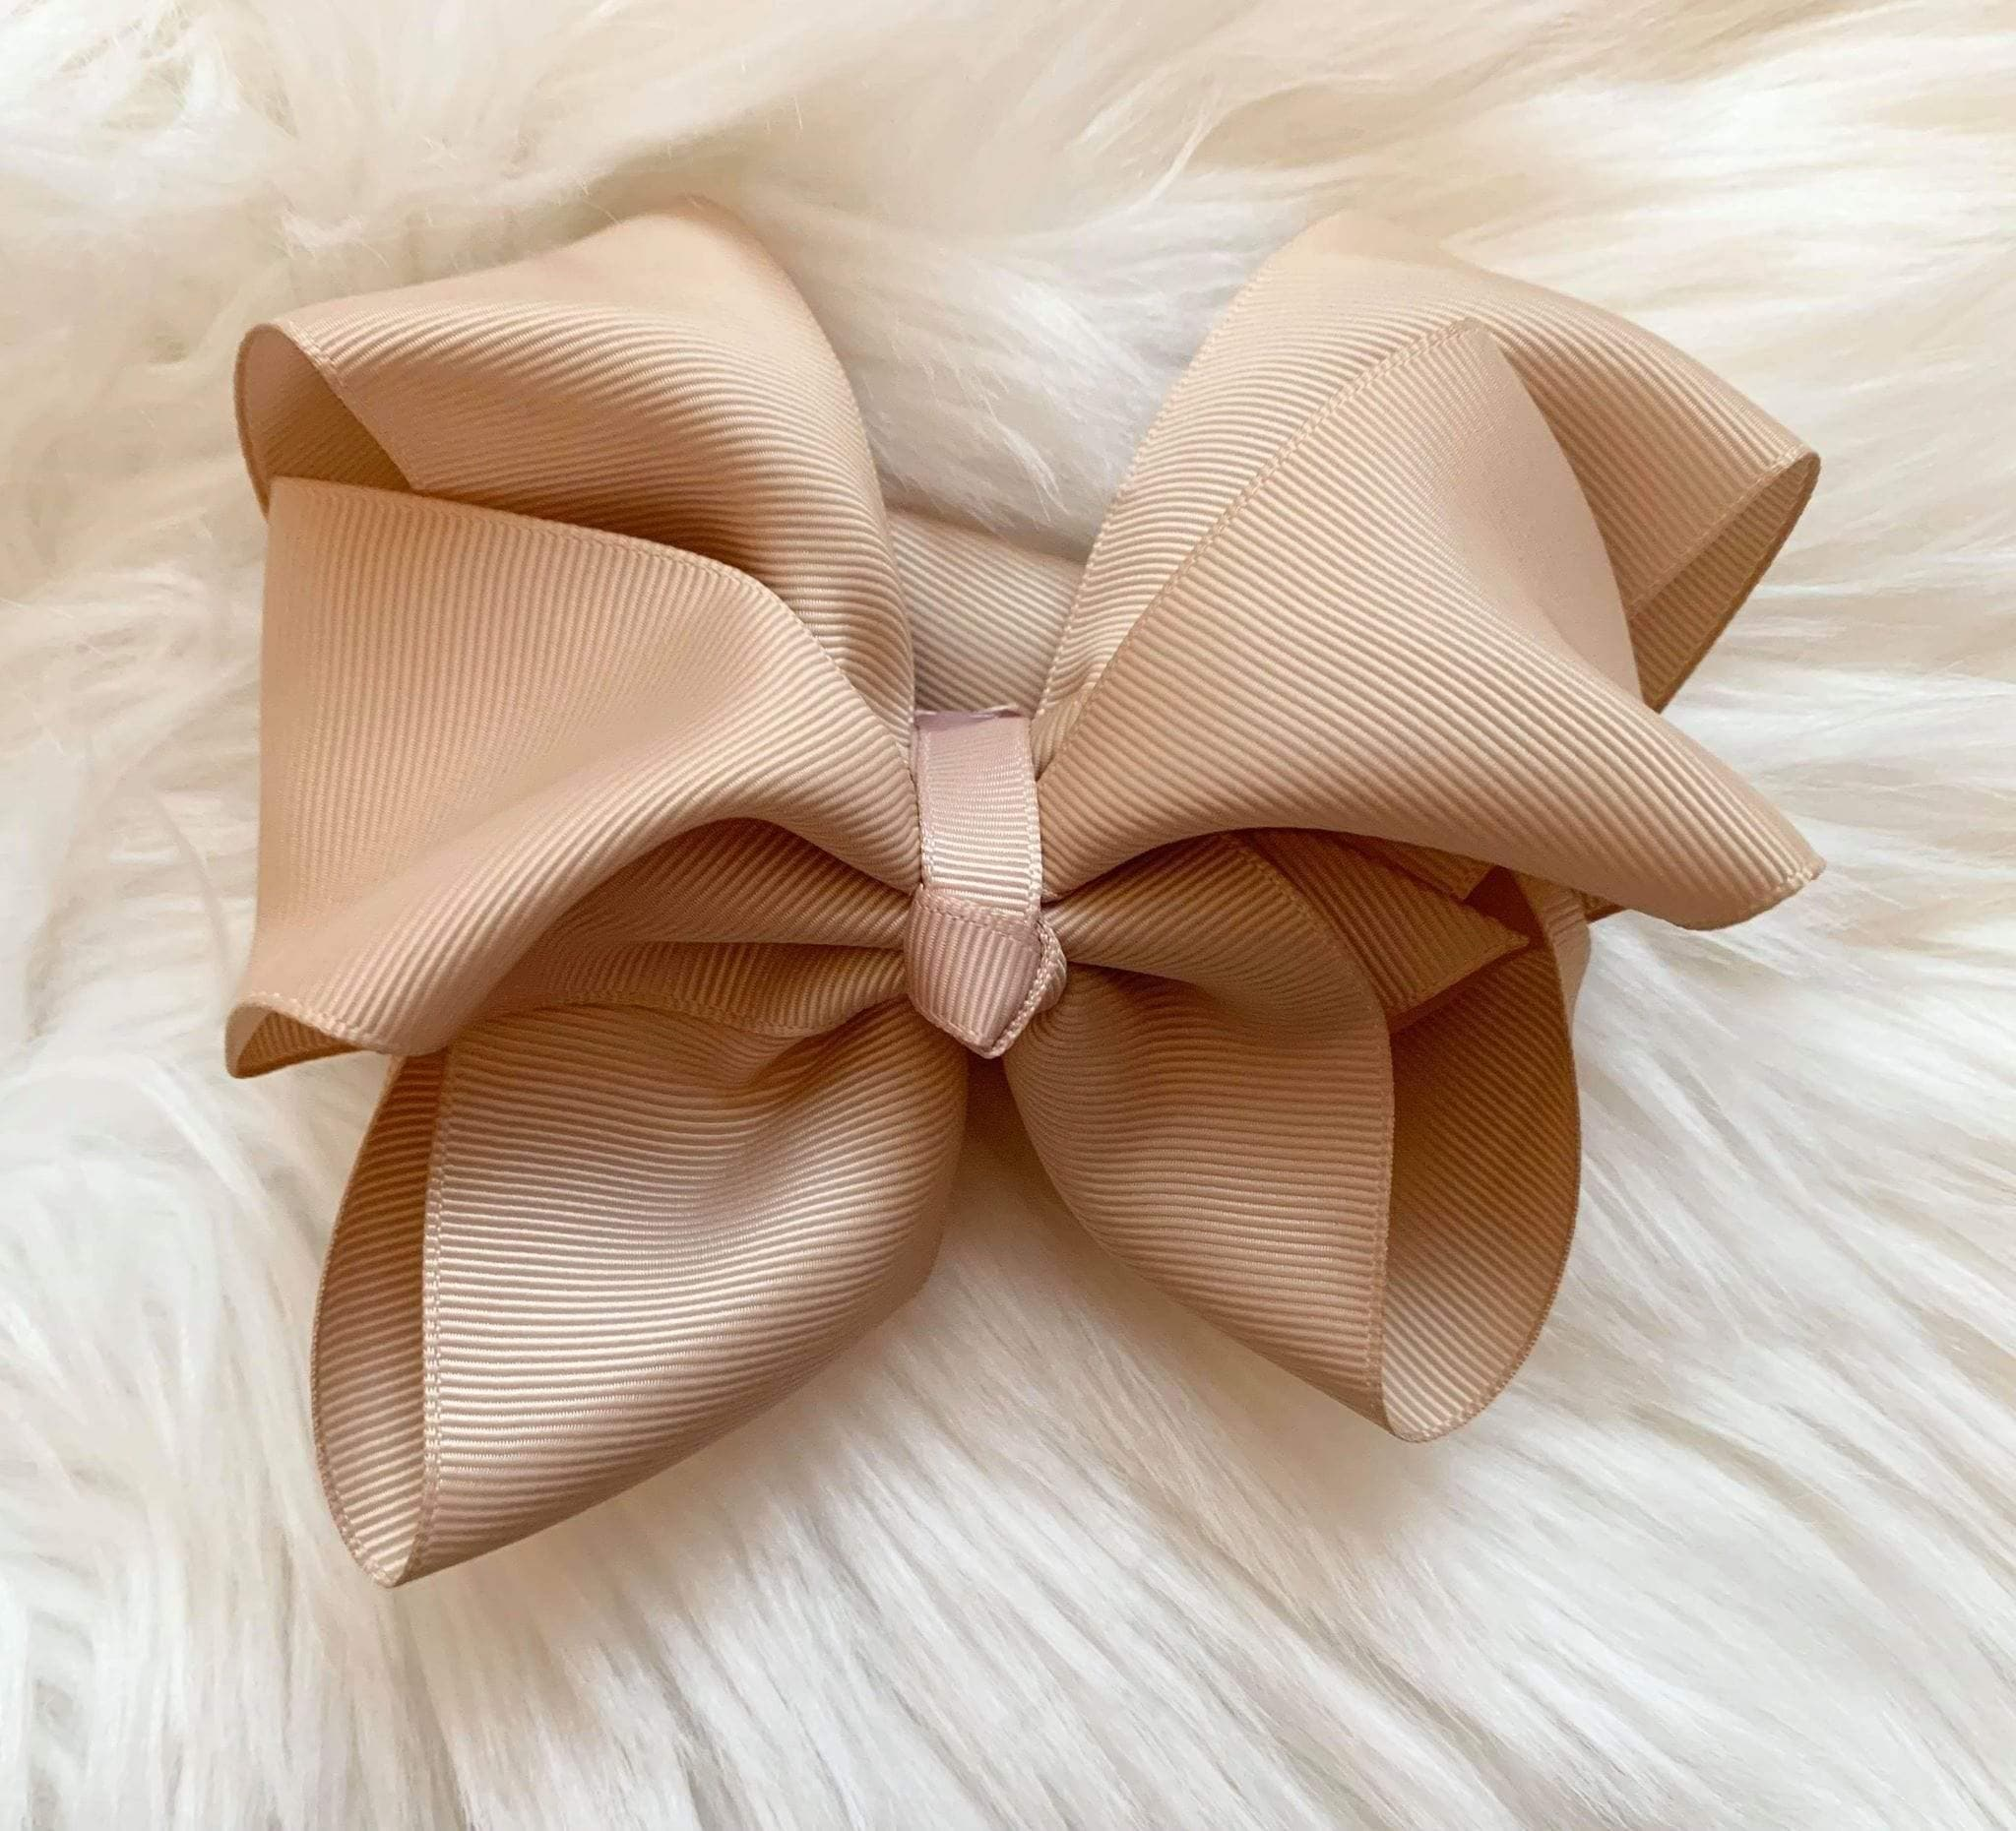 Mariposa Children's Boutique Hairbow Hairbow Camel 6""